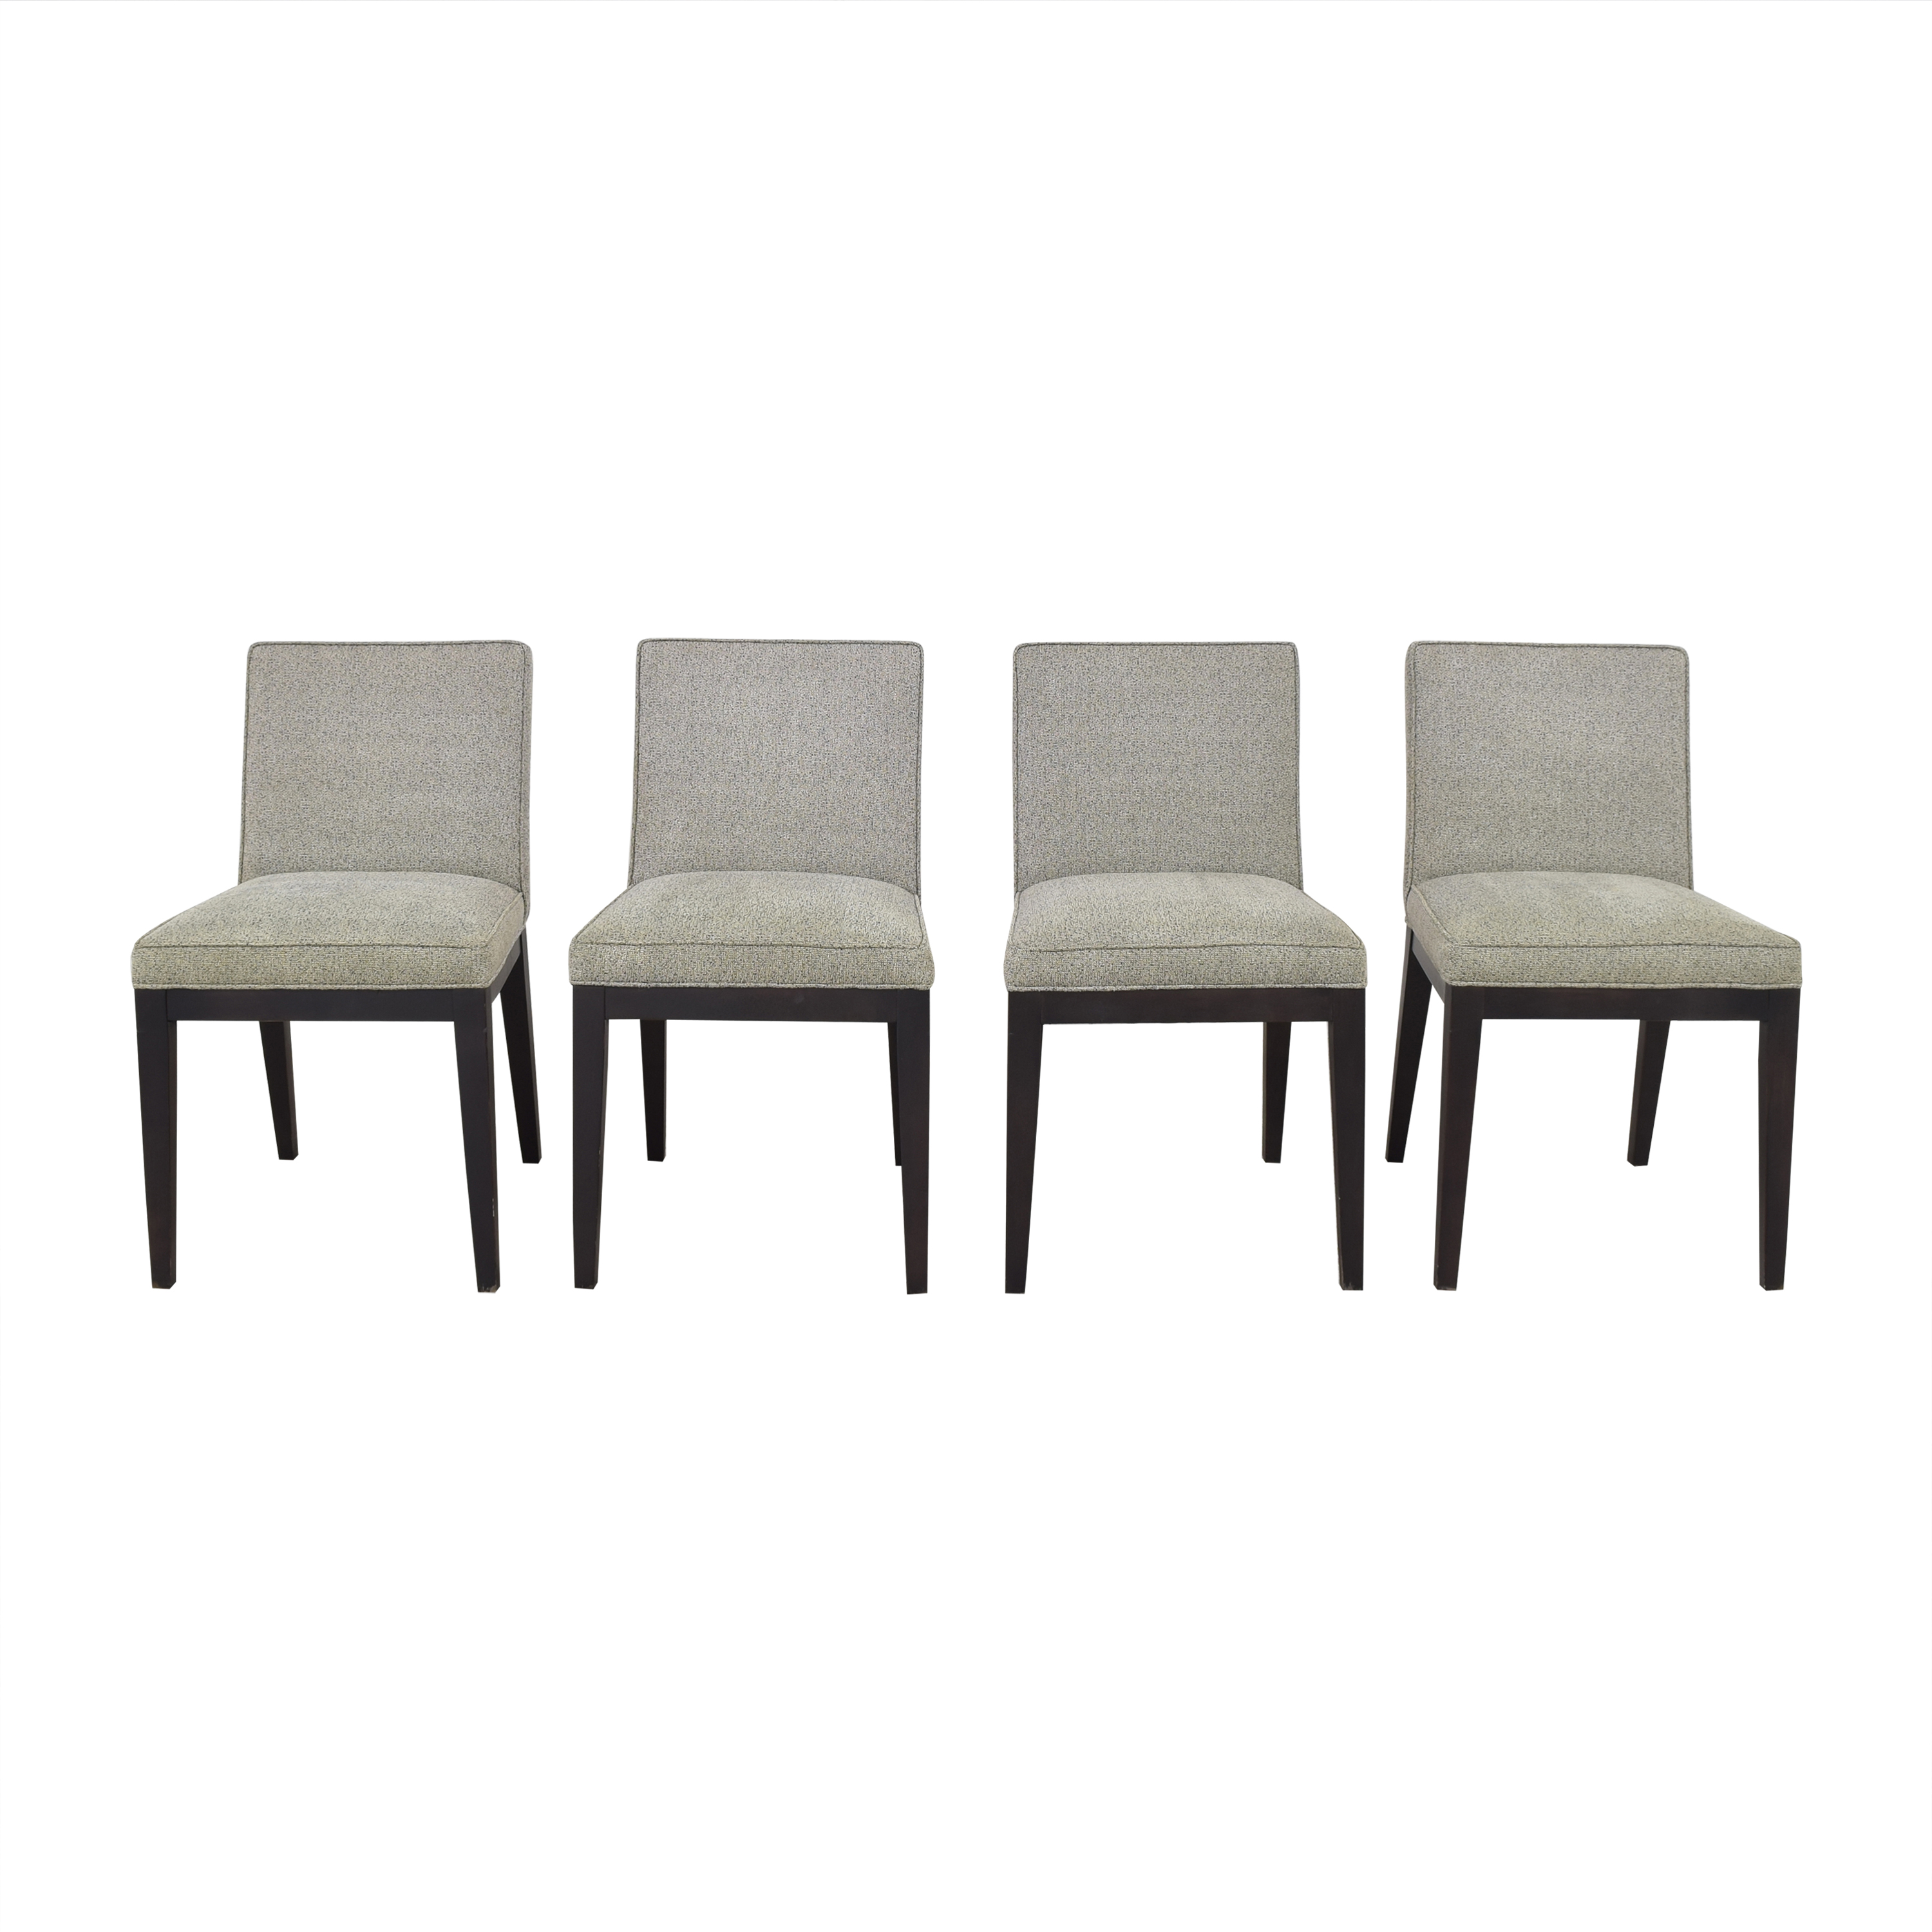 Room & Board Room & Board Ansel Dining Side Chairs